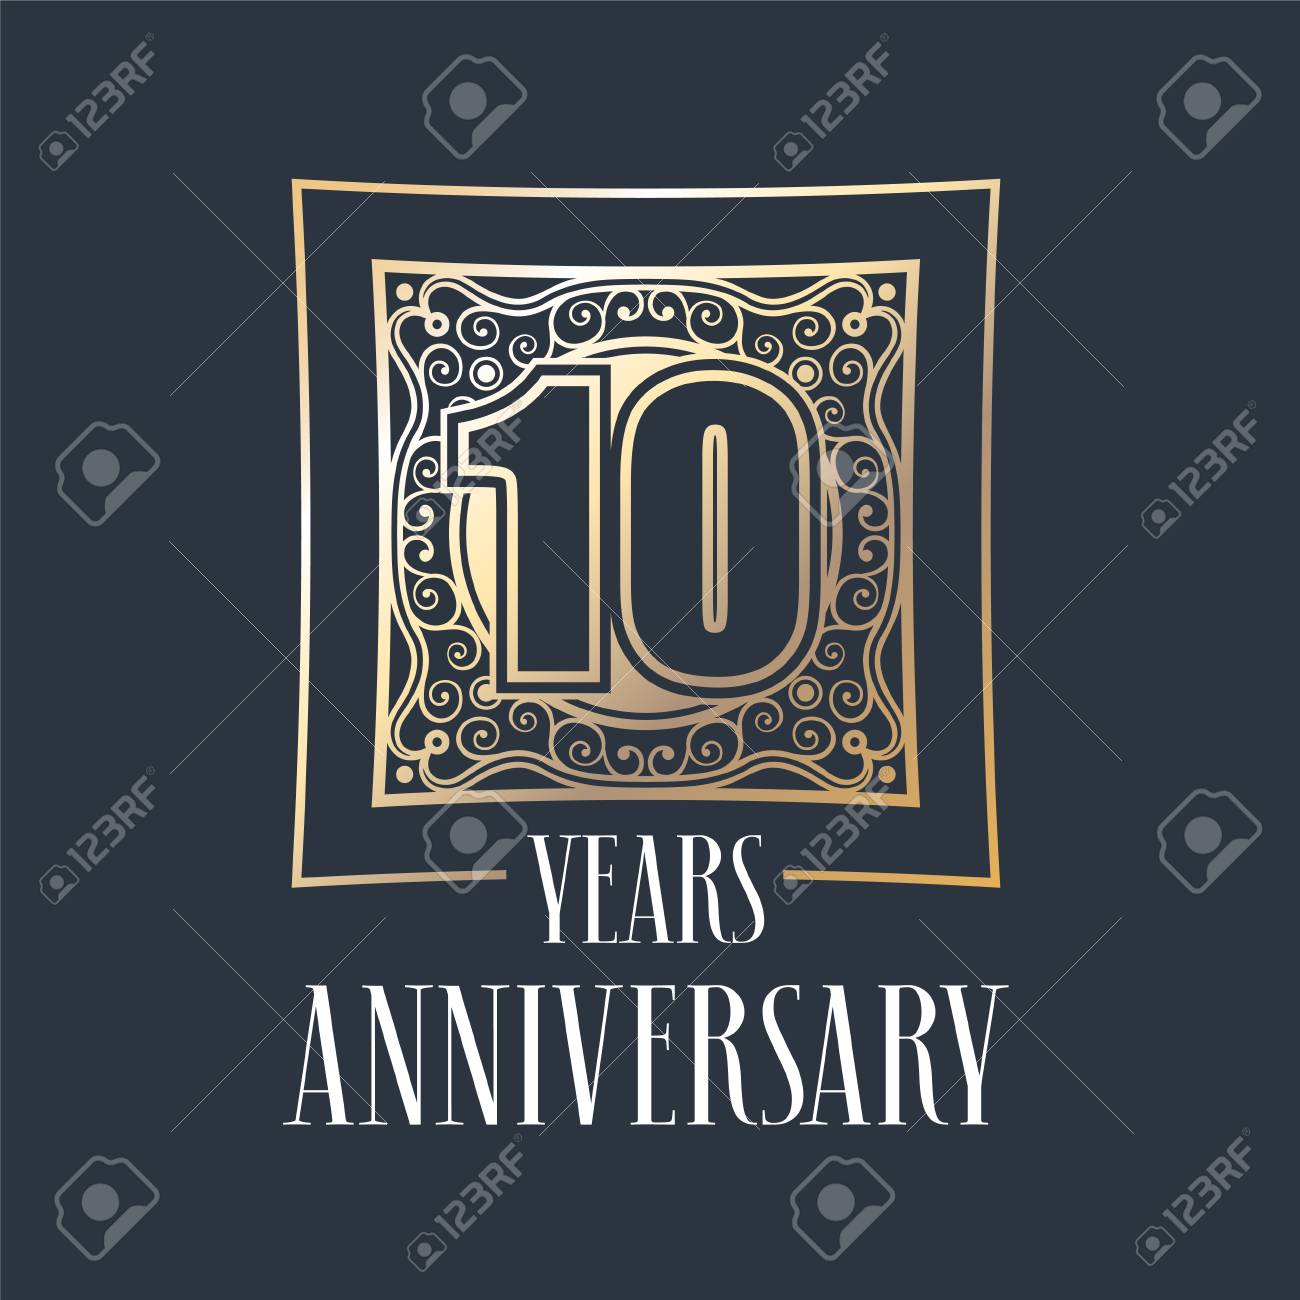 10 Years Anniversary Vector Icon Logo Graphic Design Element